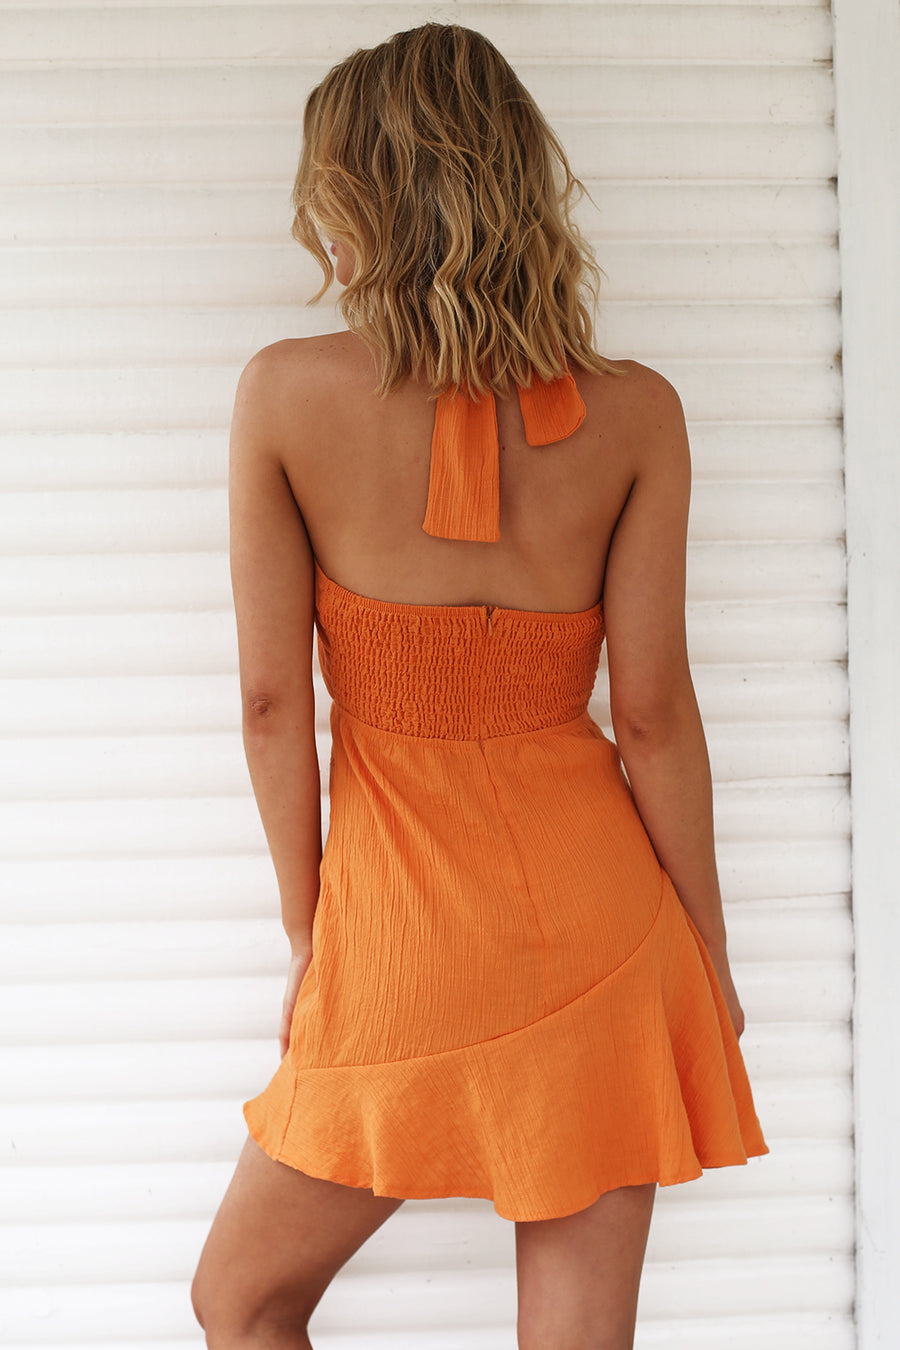 Lover Of Mine Dress - HER Empire Fashion Boutique Terrigal & Online